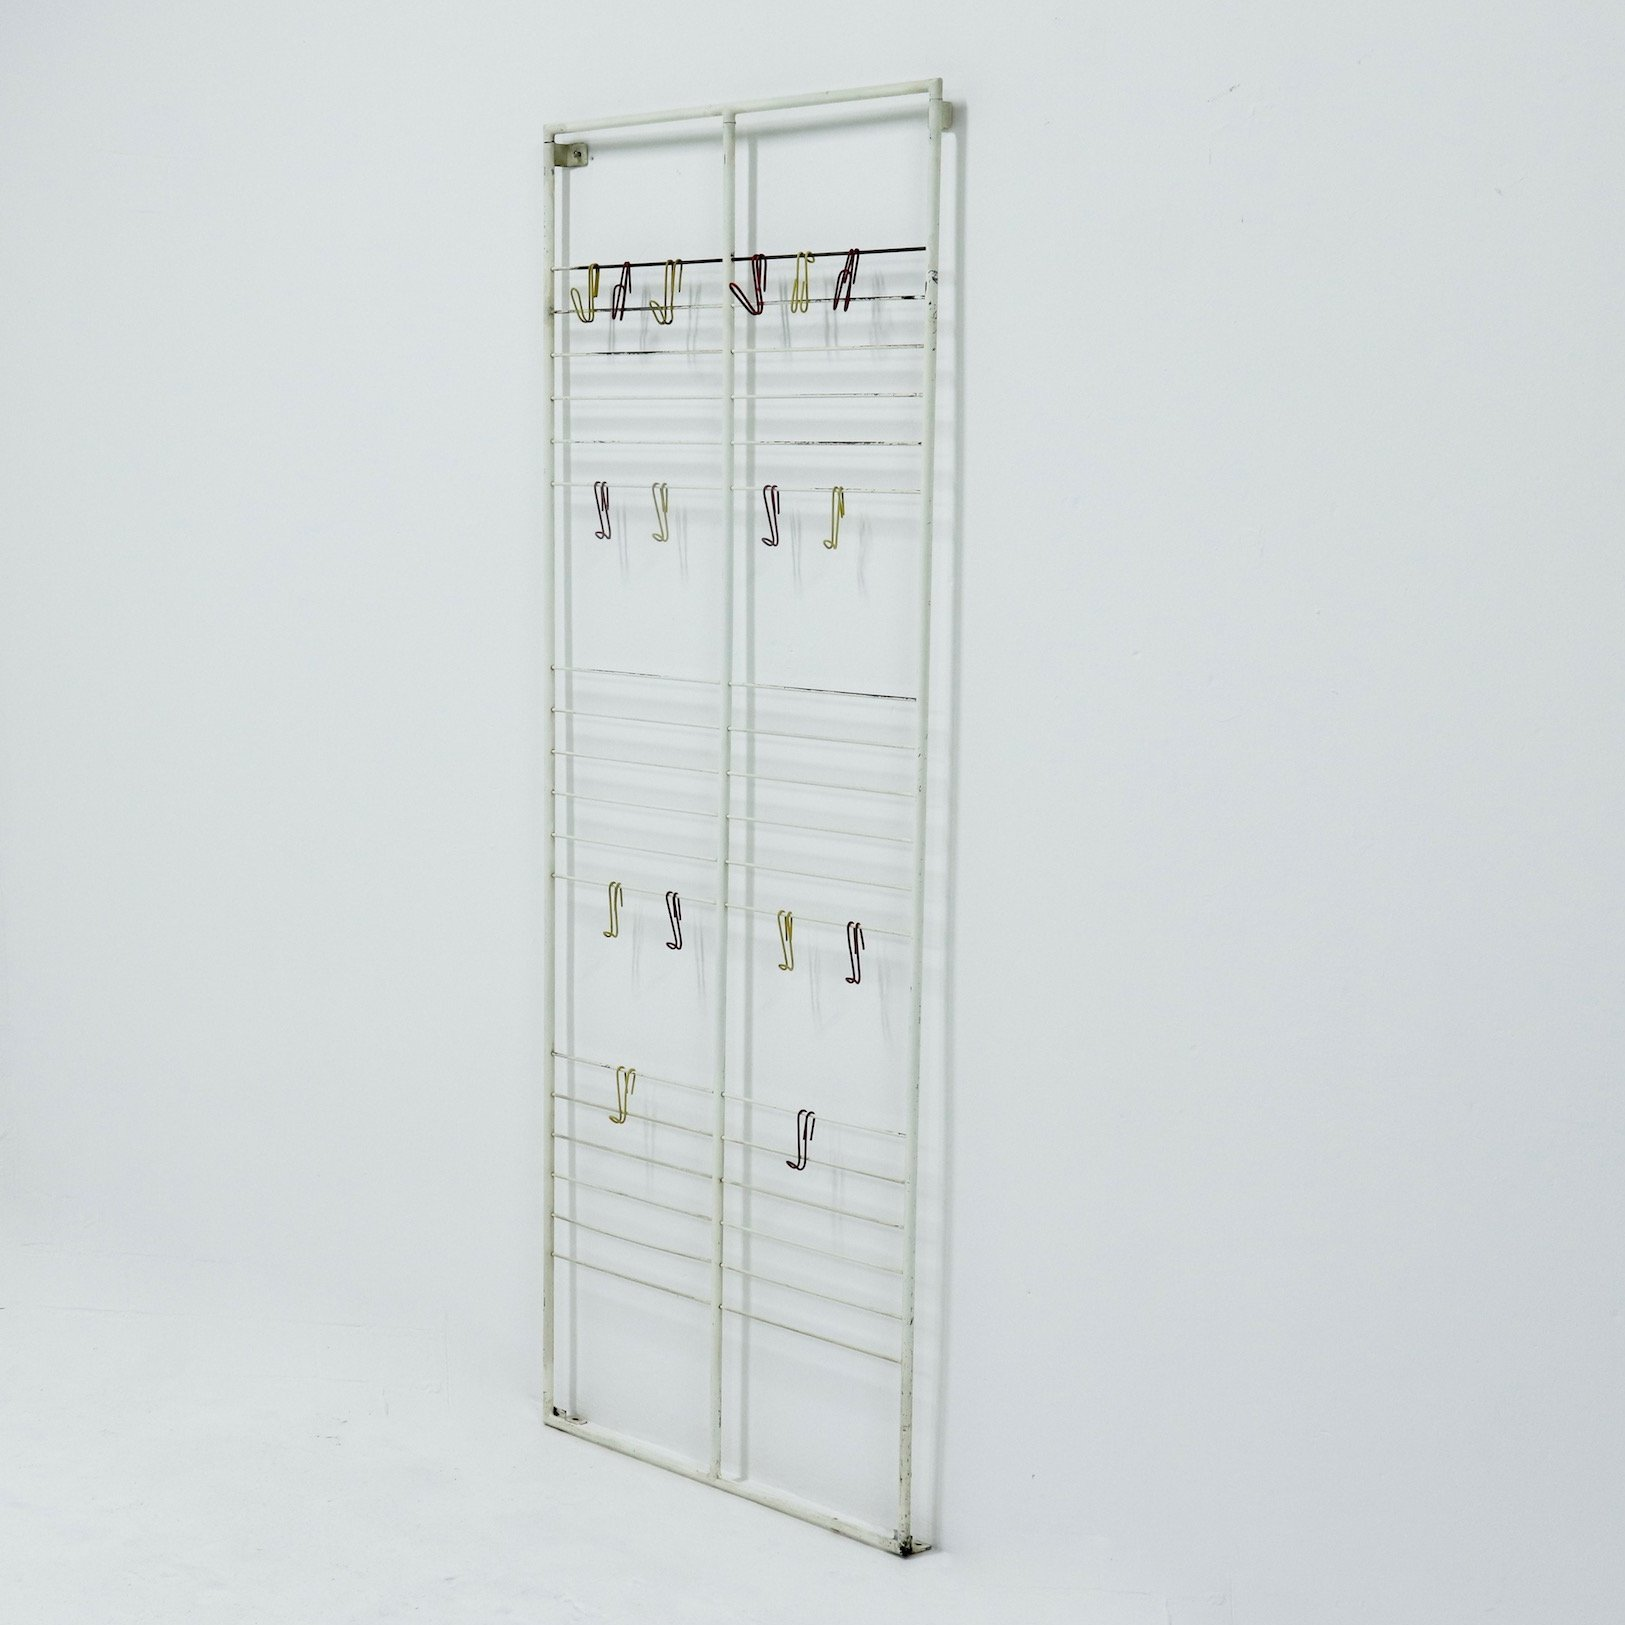 Large Wall Mounted Coat Rack By Coen De Vries For Devo 1950s 128556